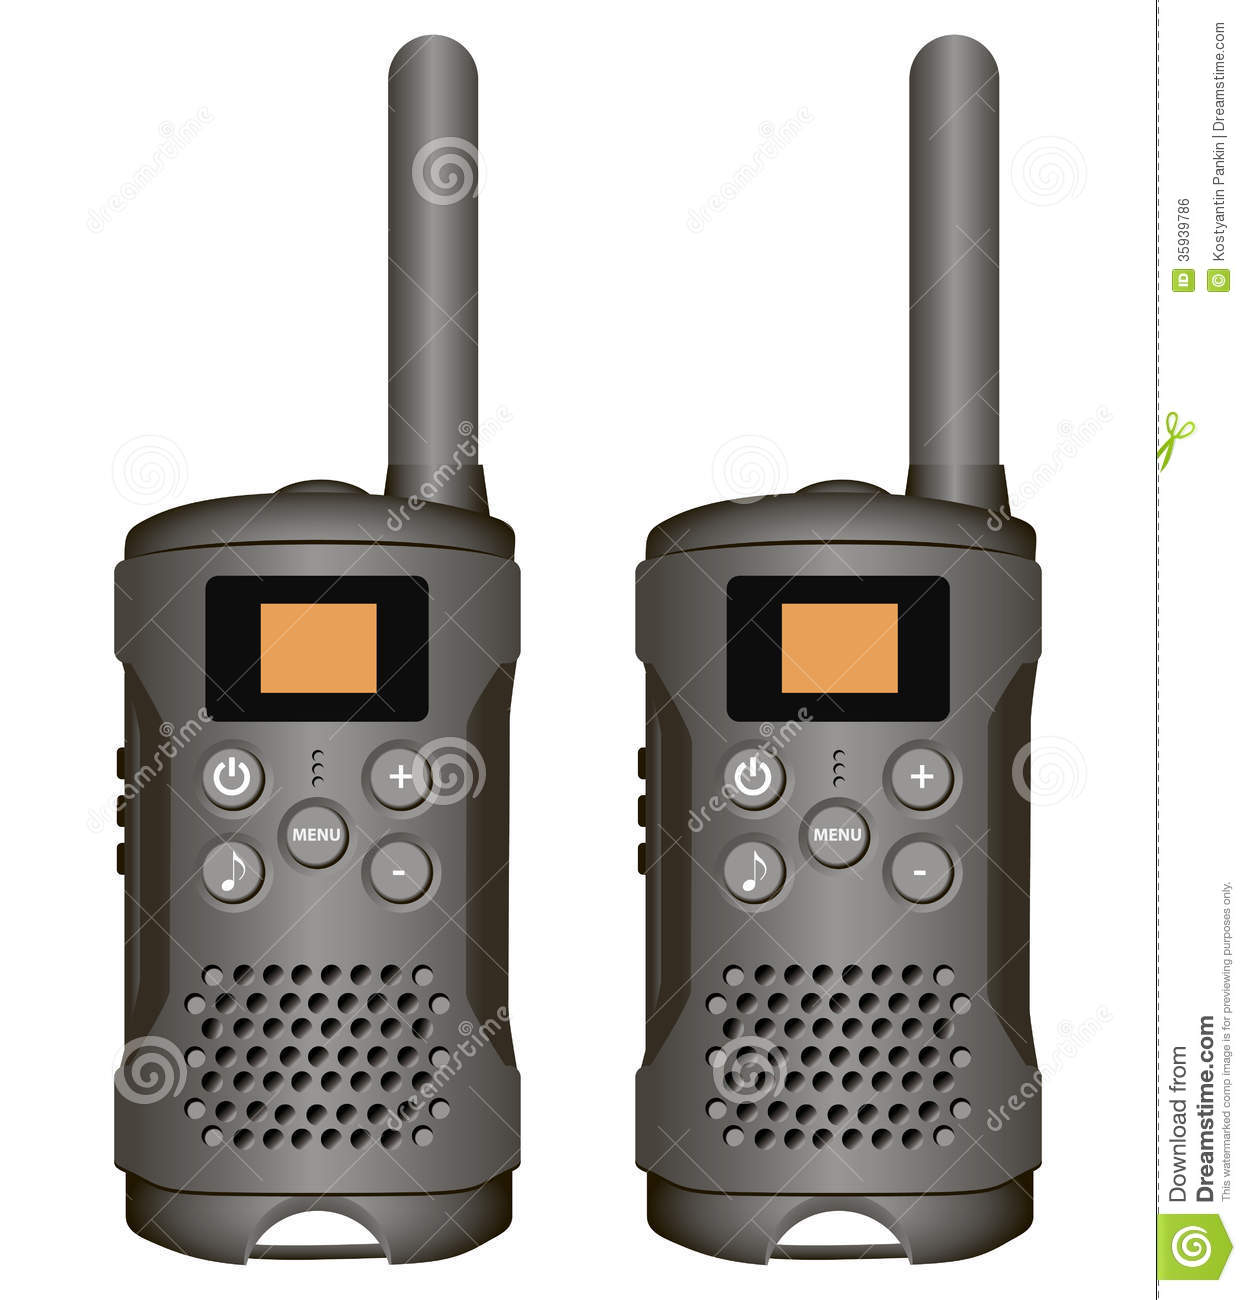 Walkie talkie in a rounded square svg png icon free download.